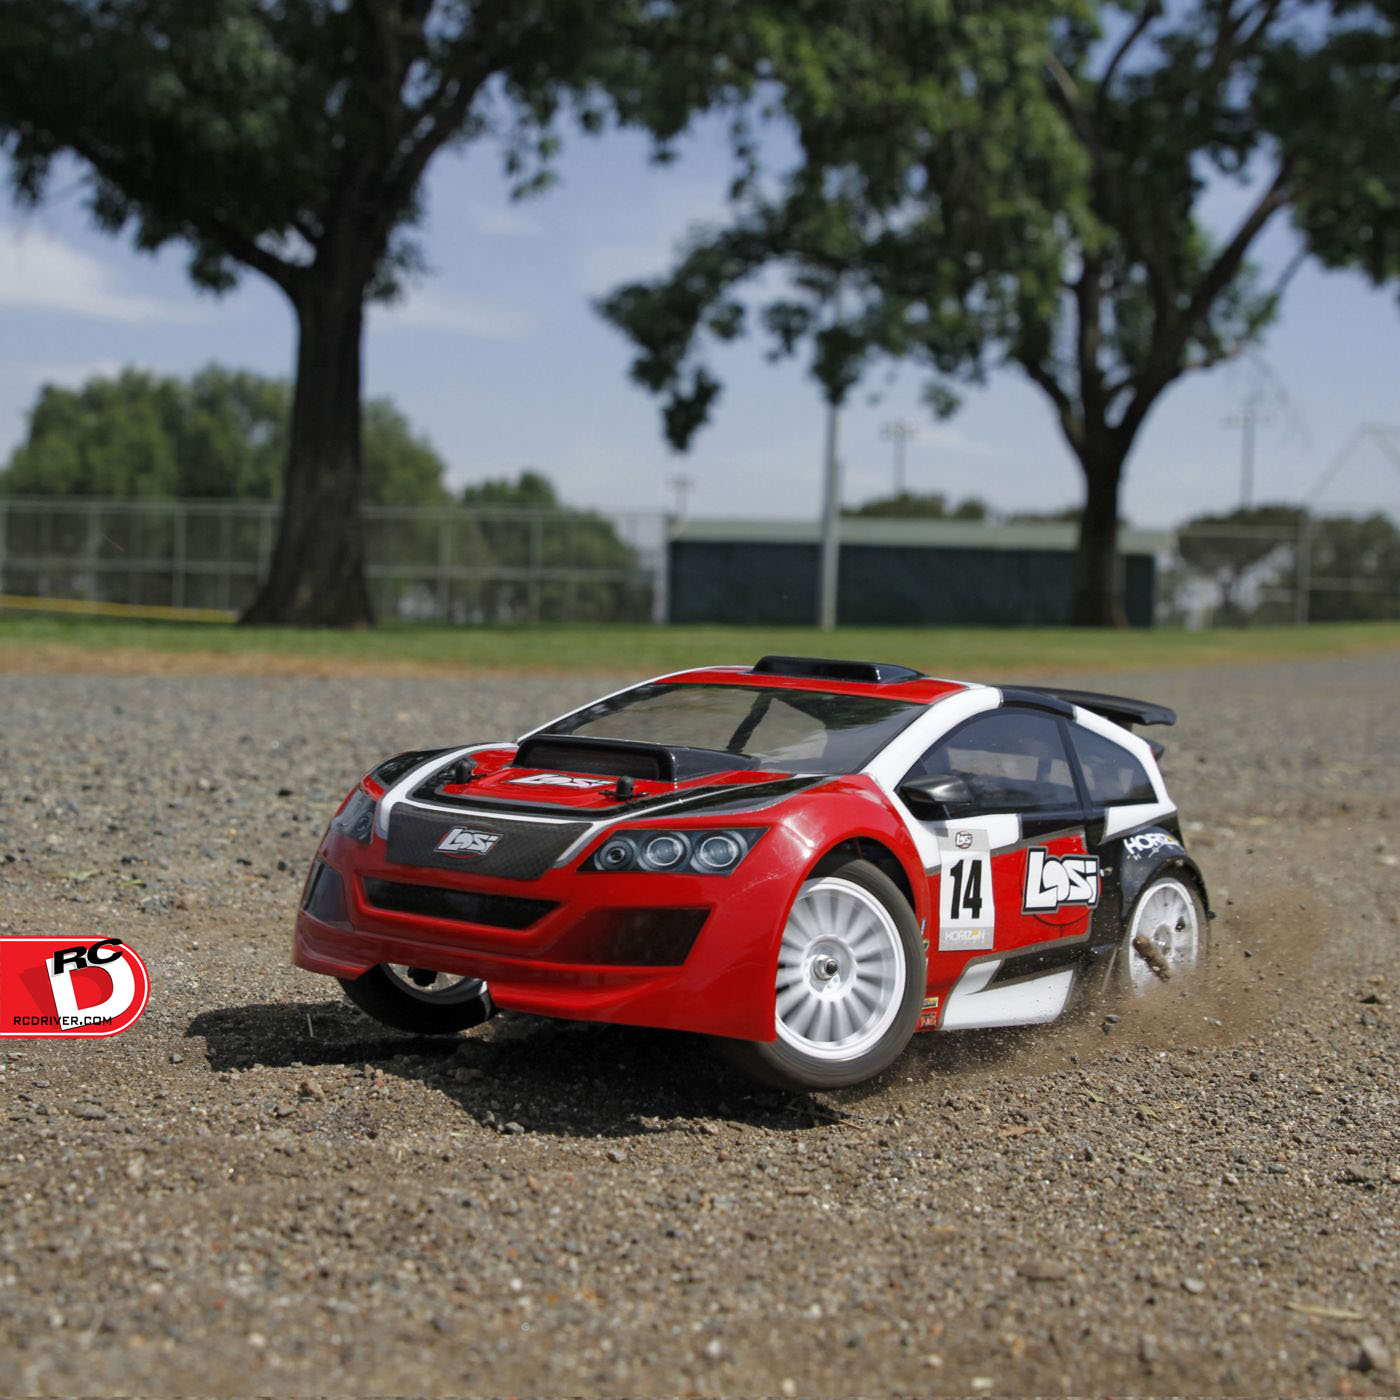 Losi - 1-14 Mini Rally Car (1) copy